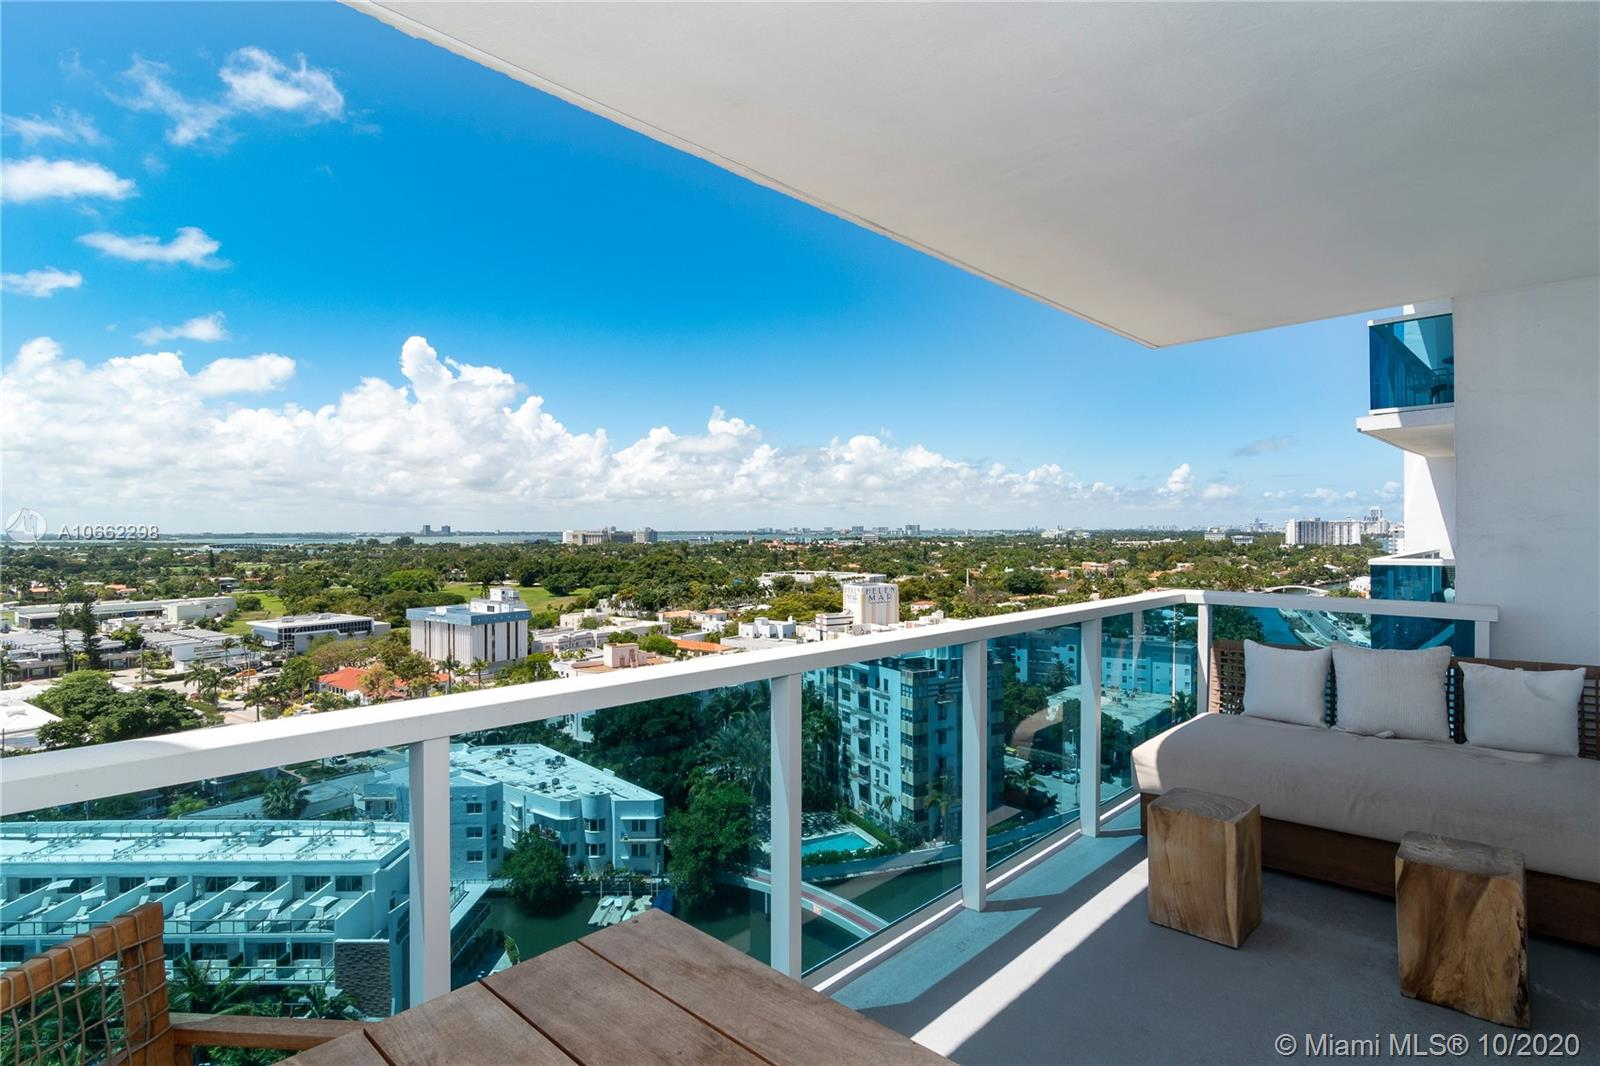 BEST DEAL IN THE BUILDING!!! PRICE DRASTICALLY REDUCED TO SELL!!! HIGH FLOOR!! Amazing furnished unit by Debora Aguiar, 1 bed, 1.5 baths, at the luxury project 1 Hotel & Homes, with 24hr concierge, full service building, free Tesla car service for the residents, Gorgeous view of Intracoastal and Miami skyline from the unit. This Unit is a great Investment opportunity, its decorated and ready to be included in the hotel program, with very good income return for the buyer. MUST SEE!!